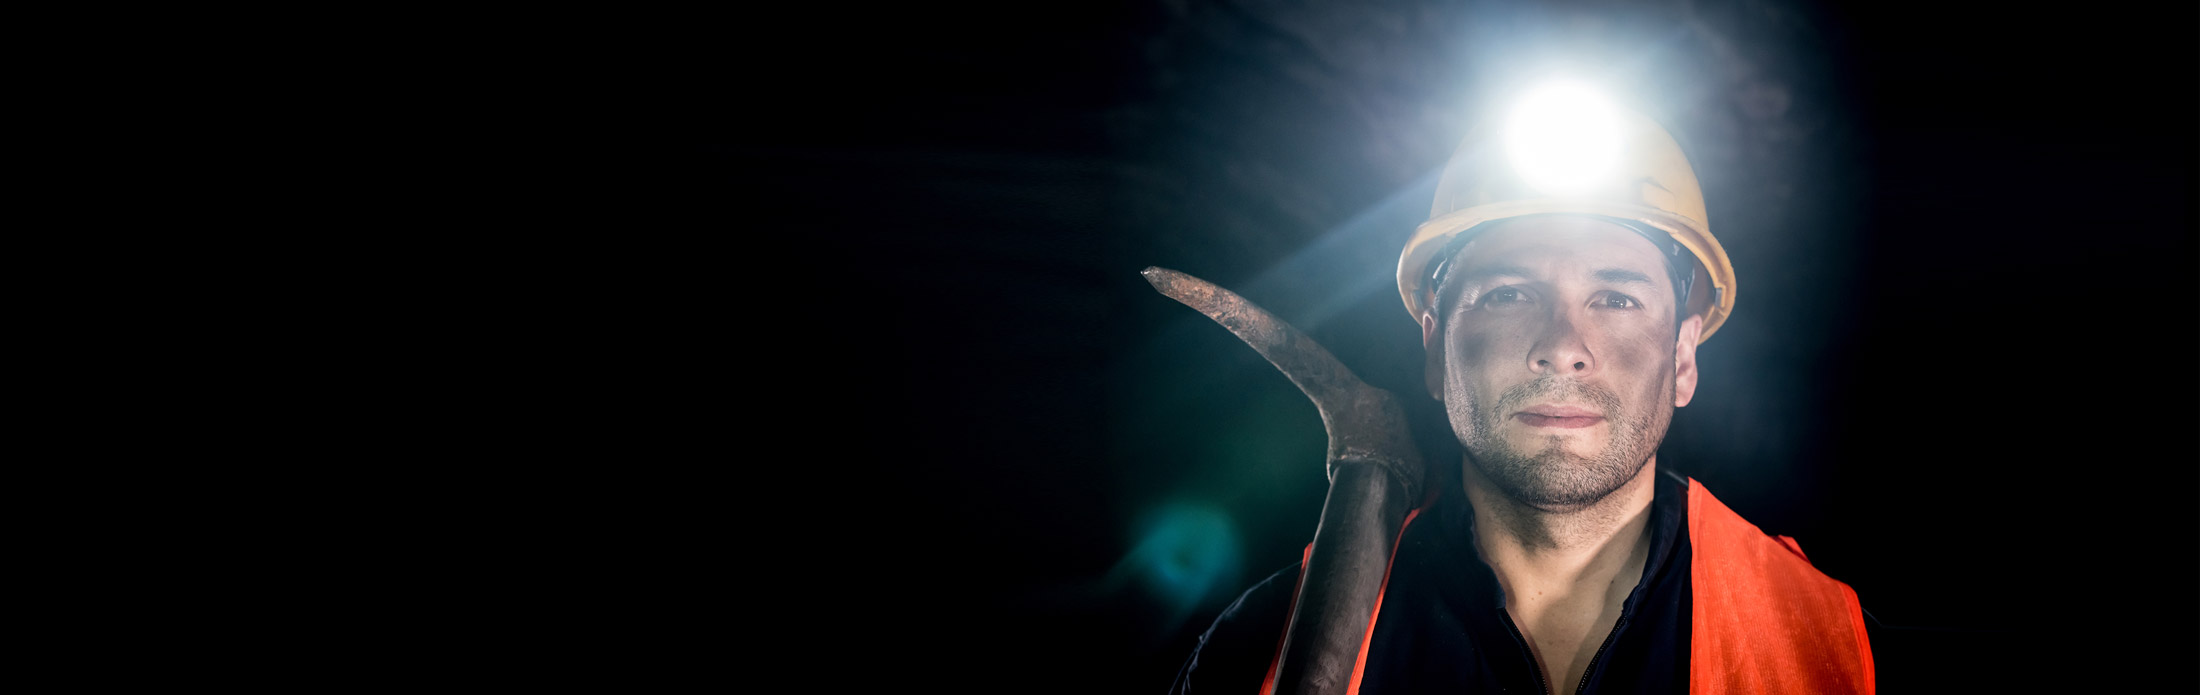 Interested in the Future of Mining? Then You'll Want to Know About Smart Cap Lamps.